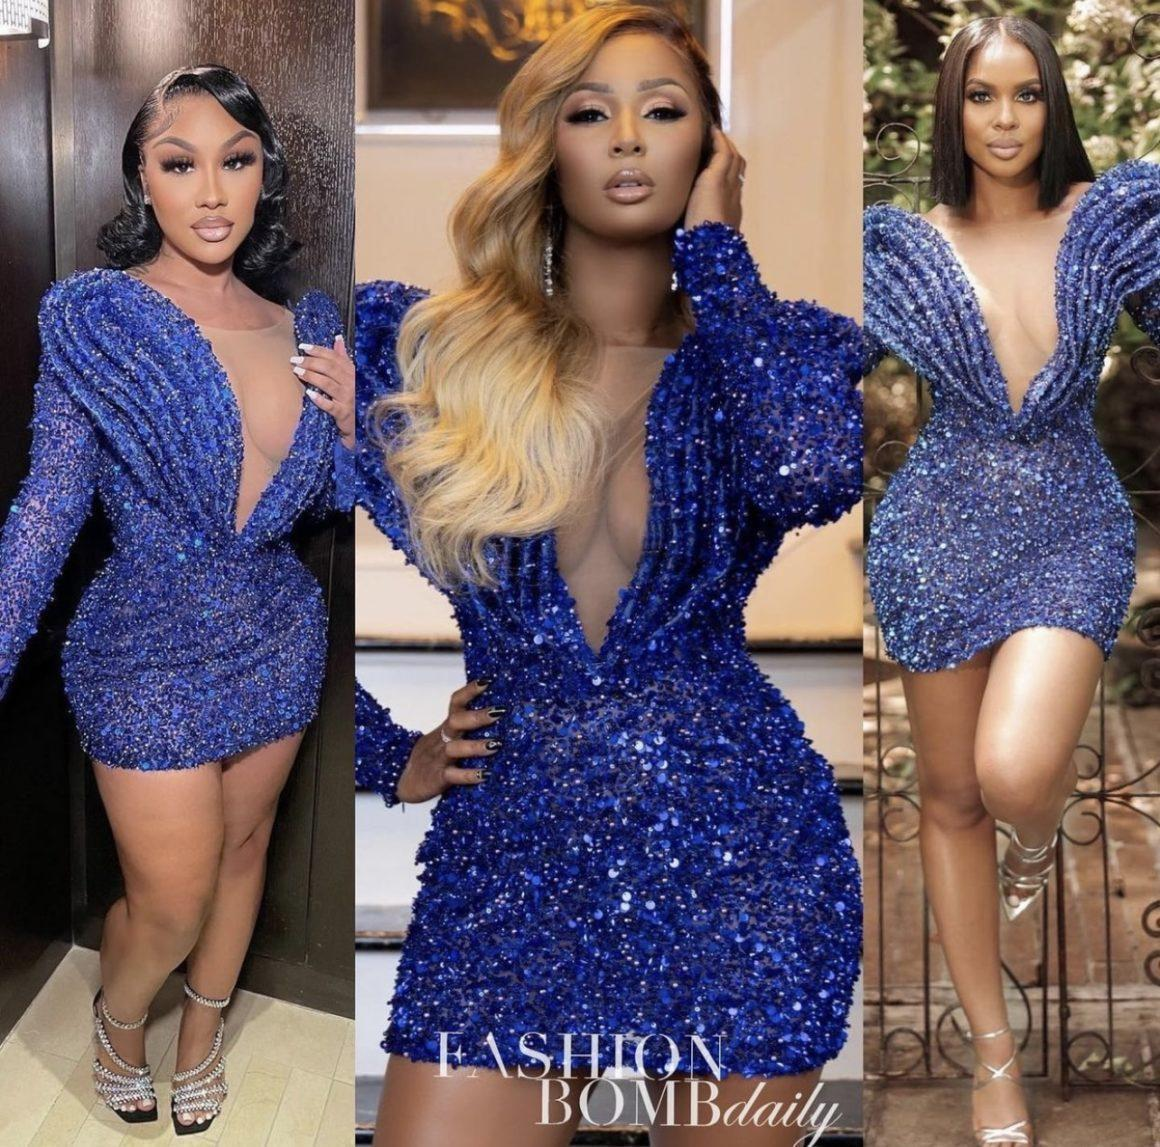 Celebs Love: Ari Fletcher, Melody S. Holt, and It Girl Ariel Spotted in Albina Dyla x Ivy Showroom Blue Sequin Mini Dress